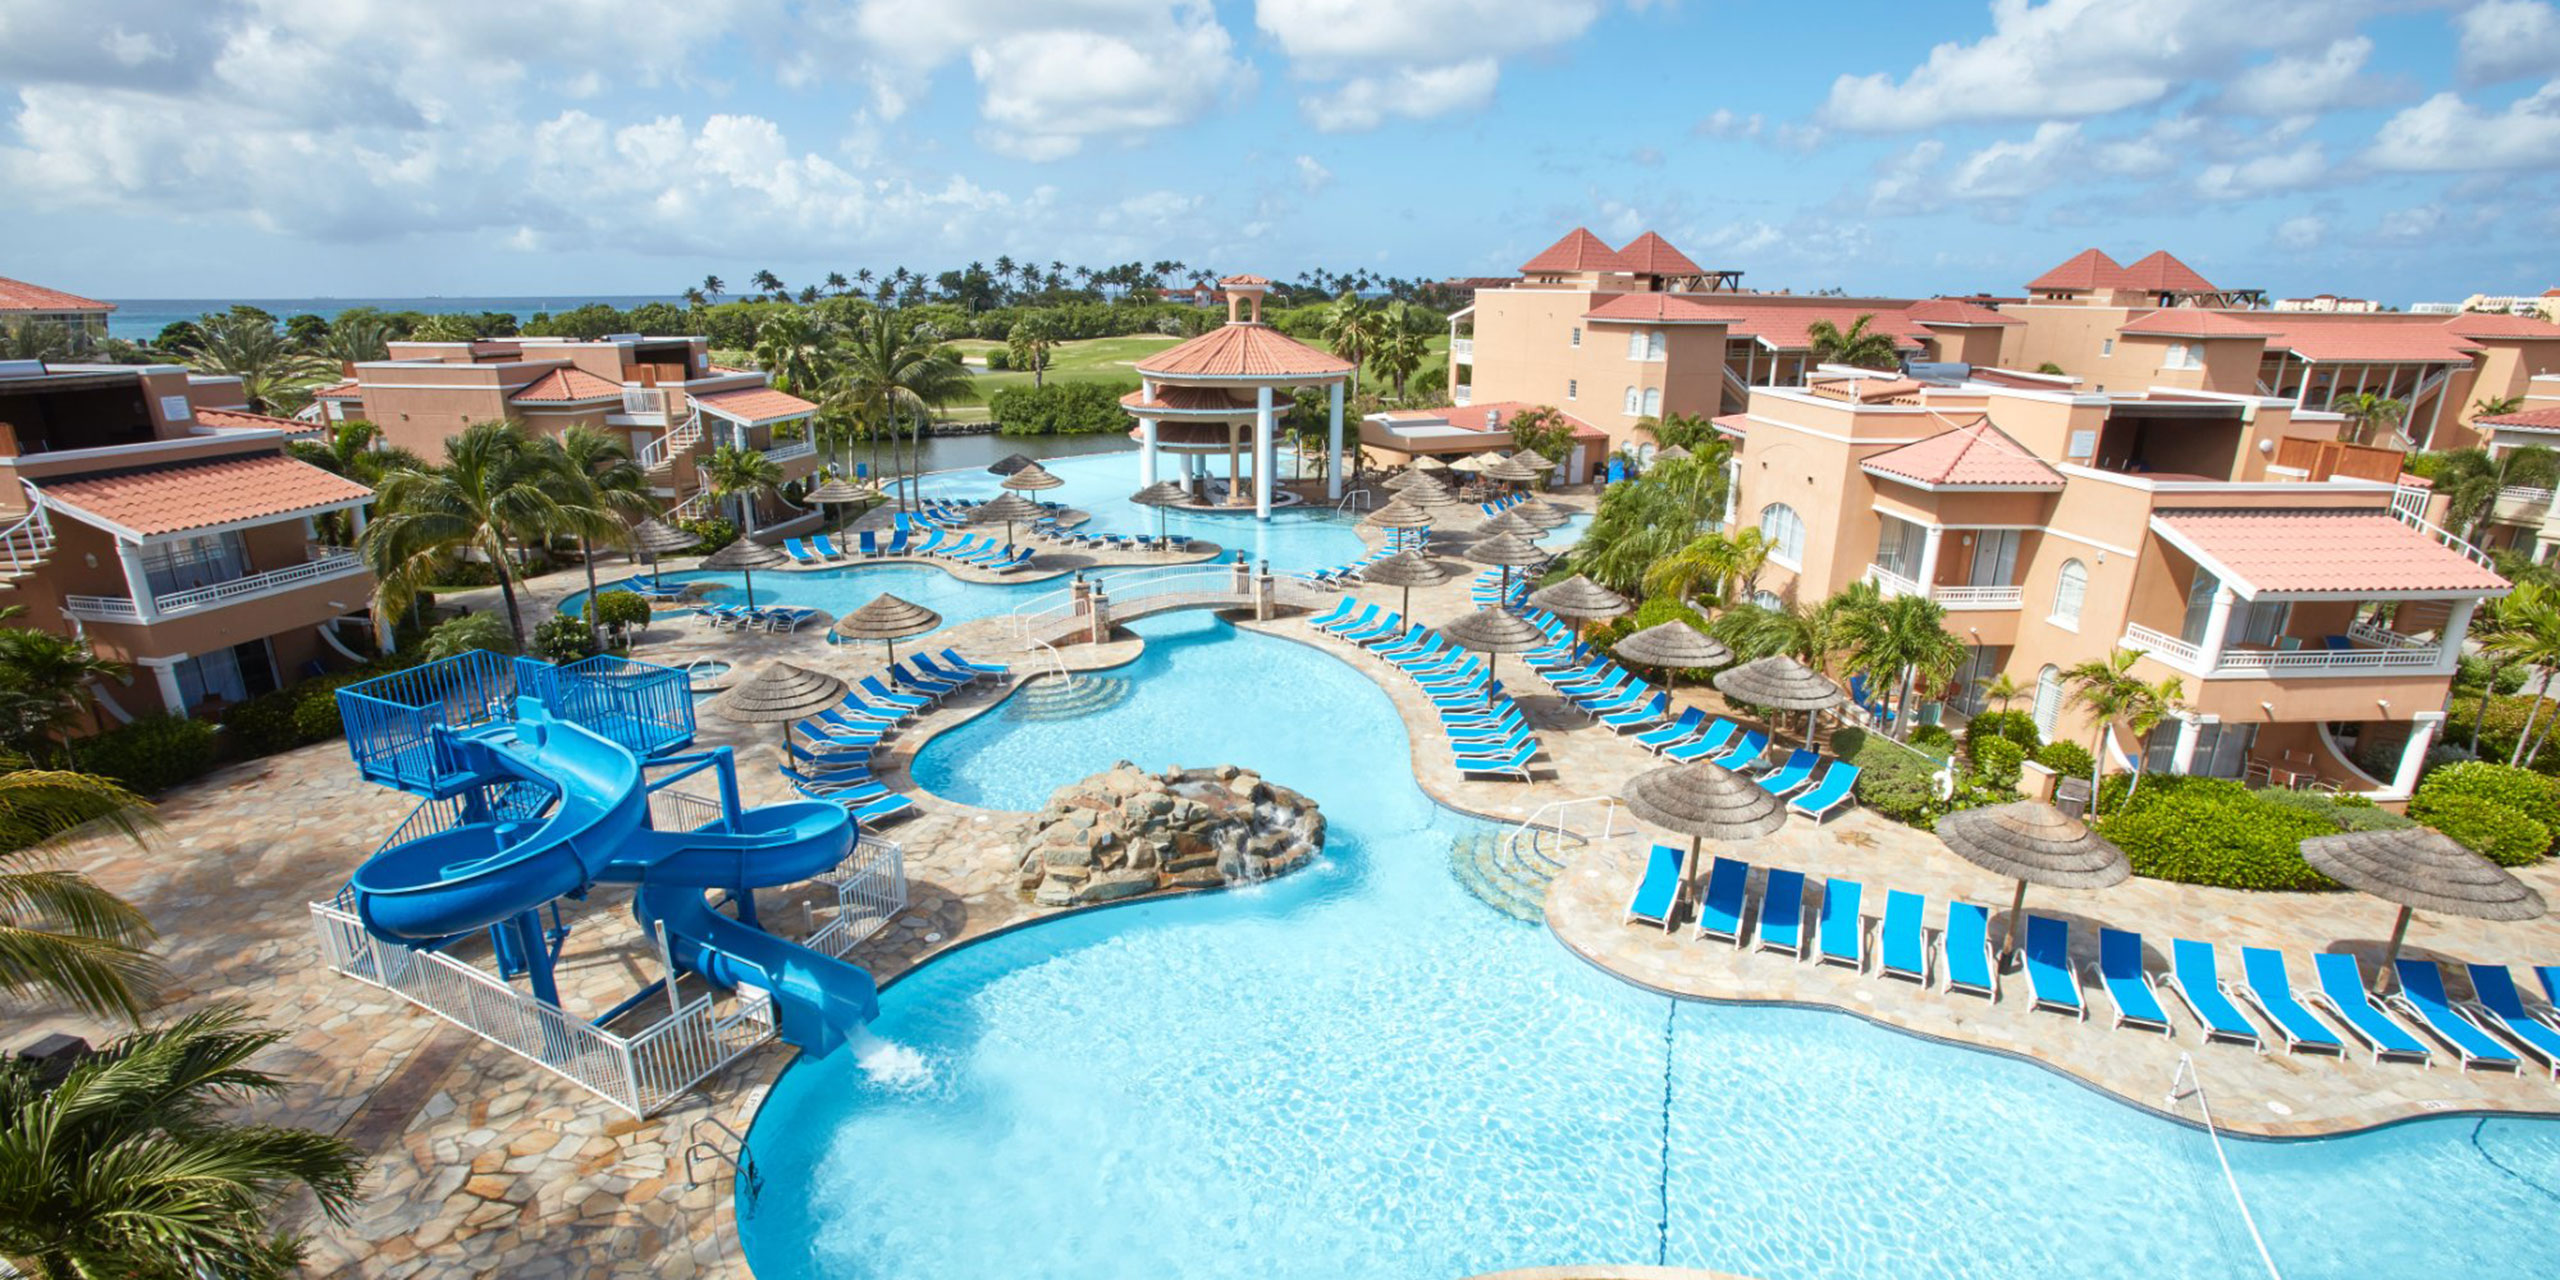 10 Best BangforYourBuck Caribbean Family Resorts